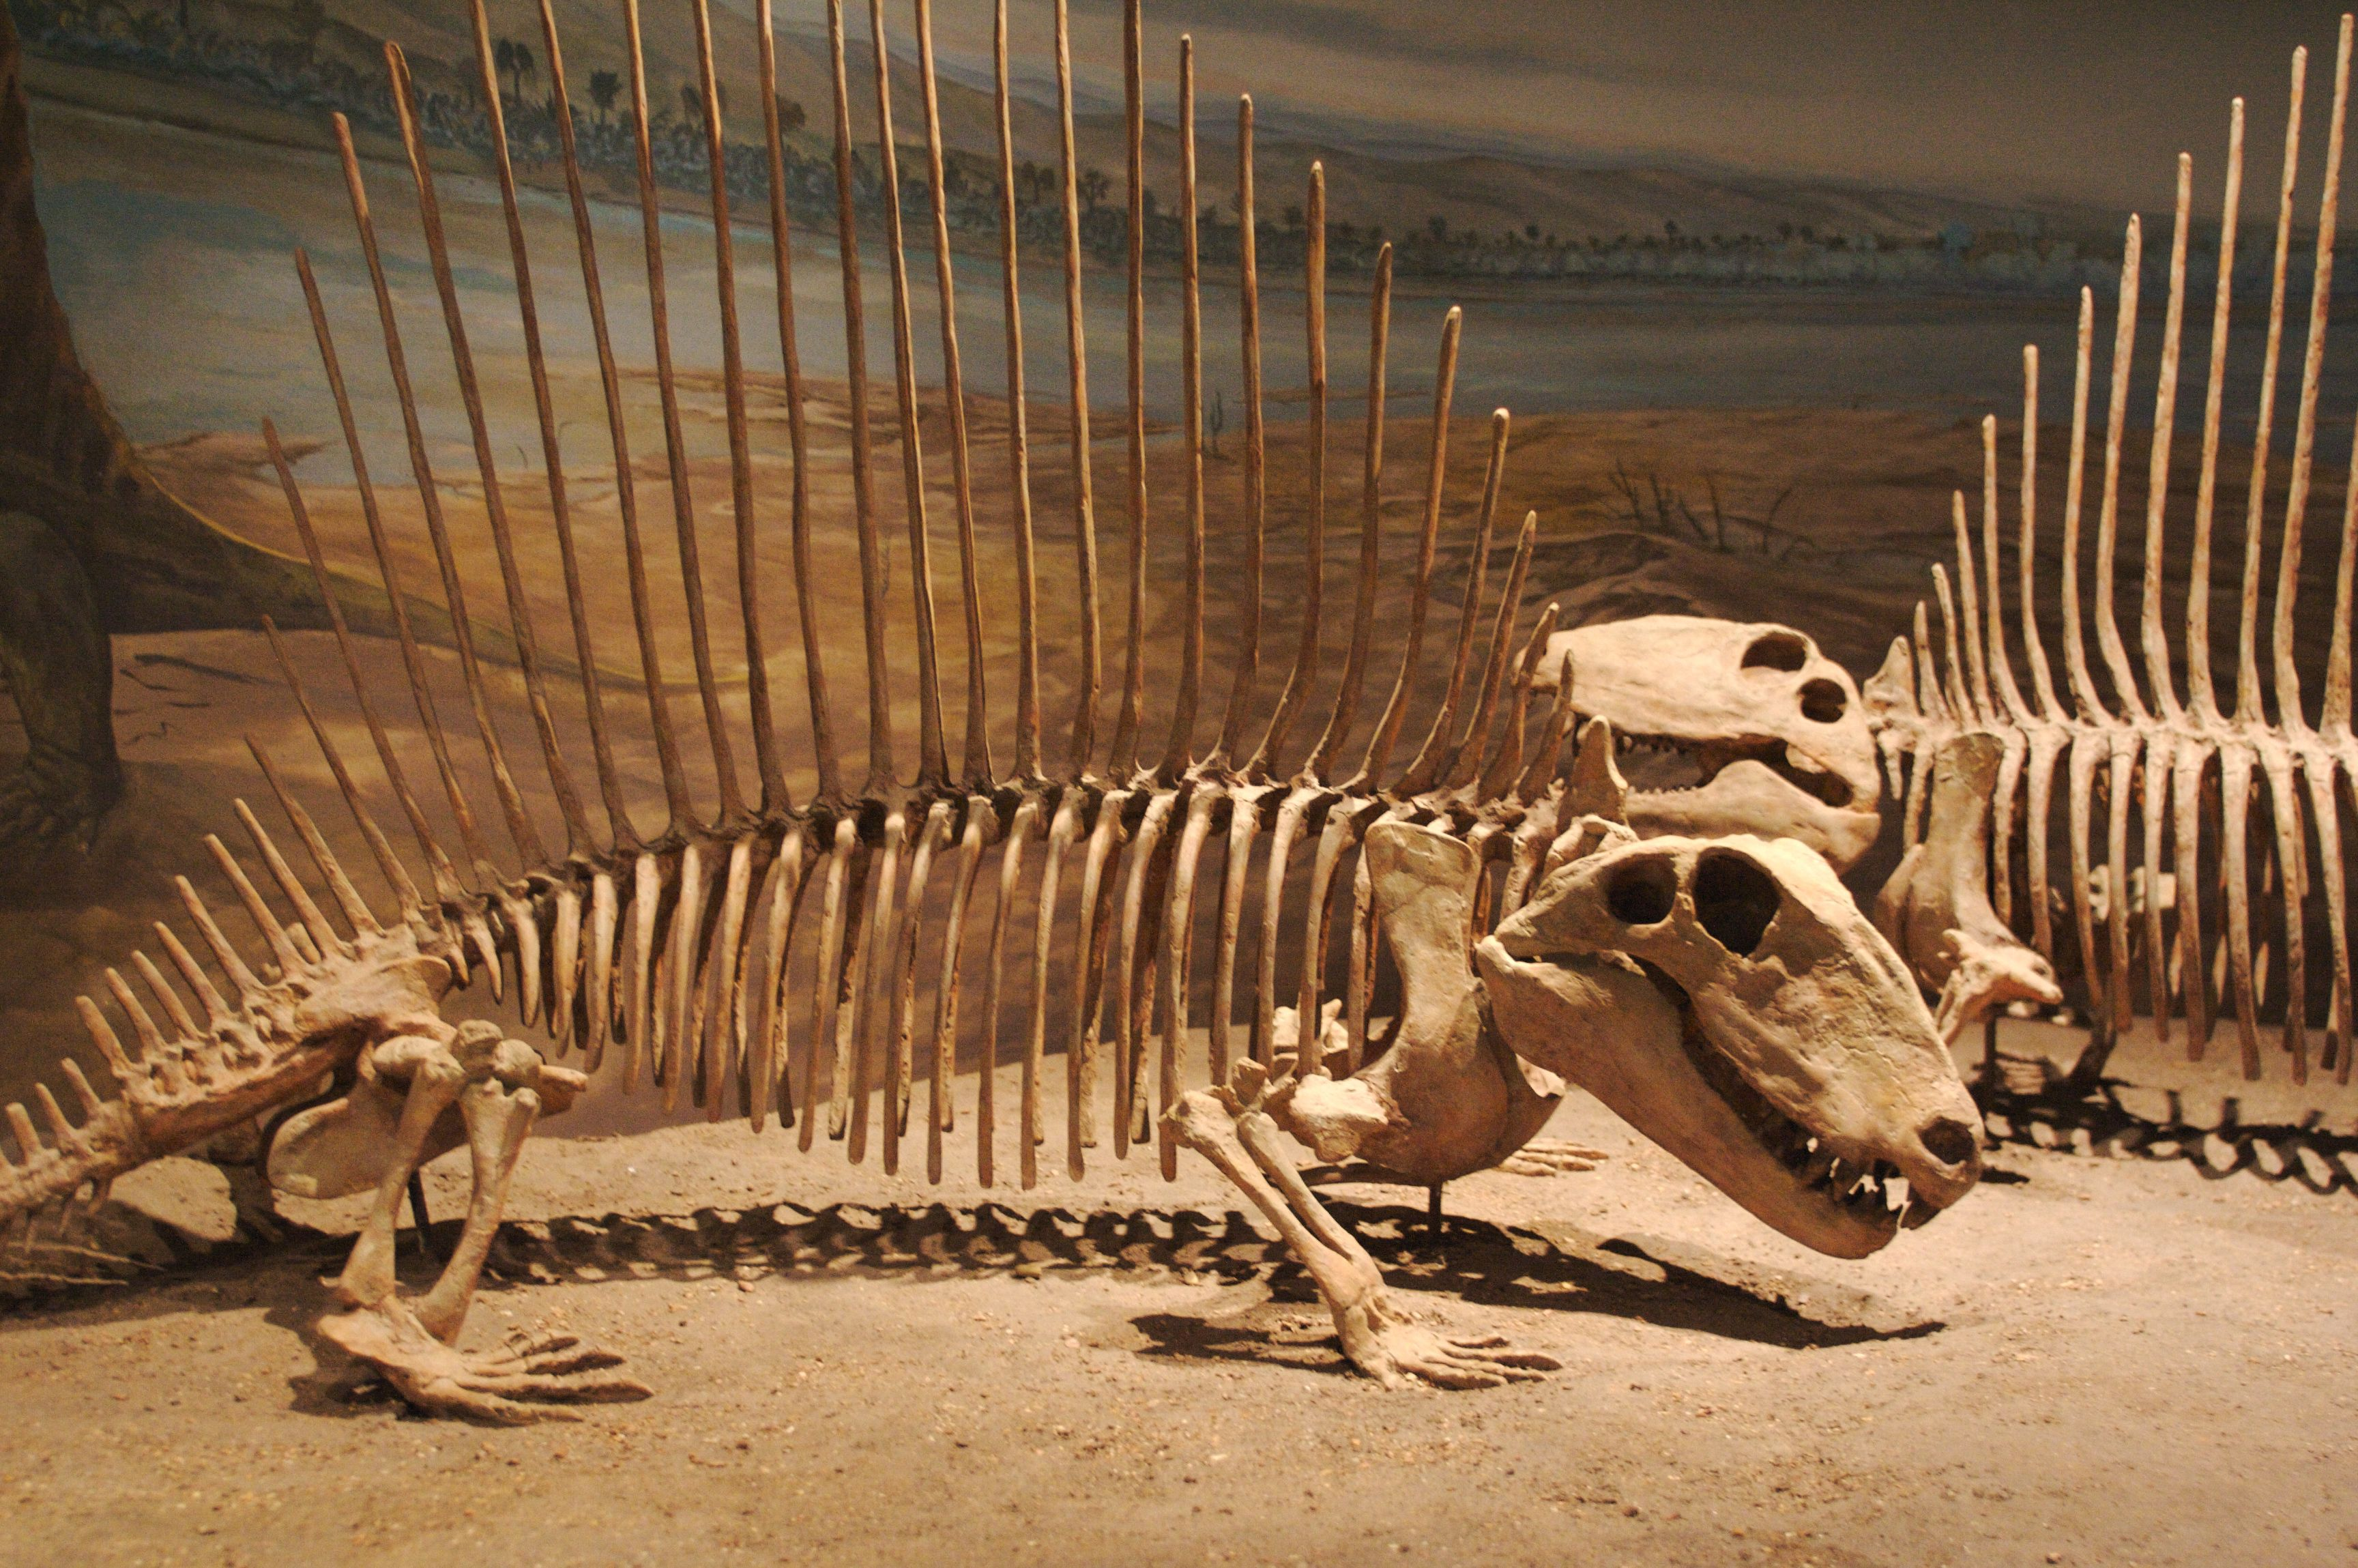 A pair of dimetrodon skeletons displays the long, spindly bones that support the sail